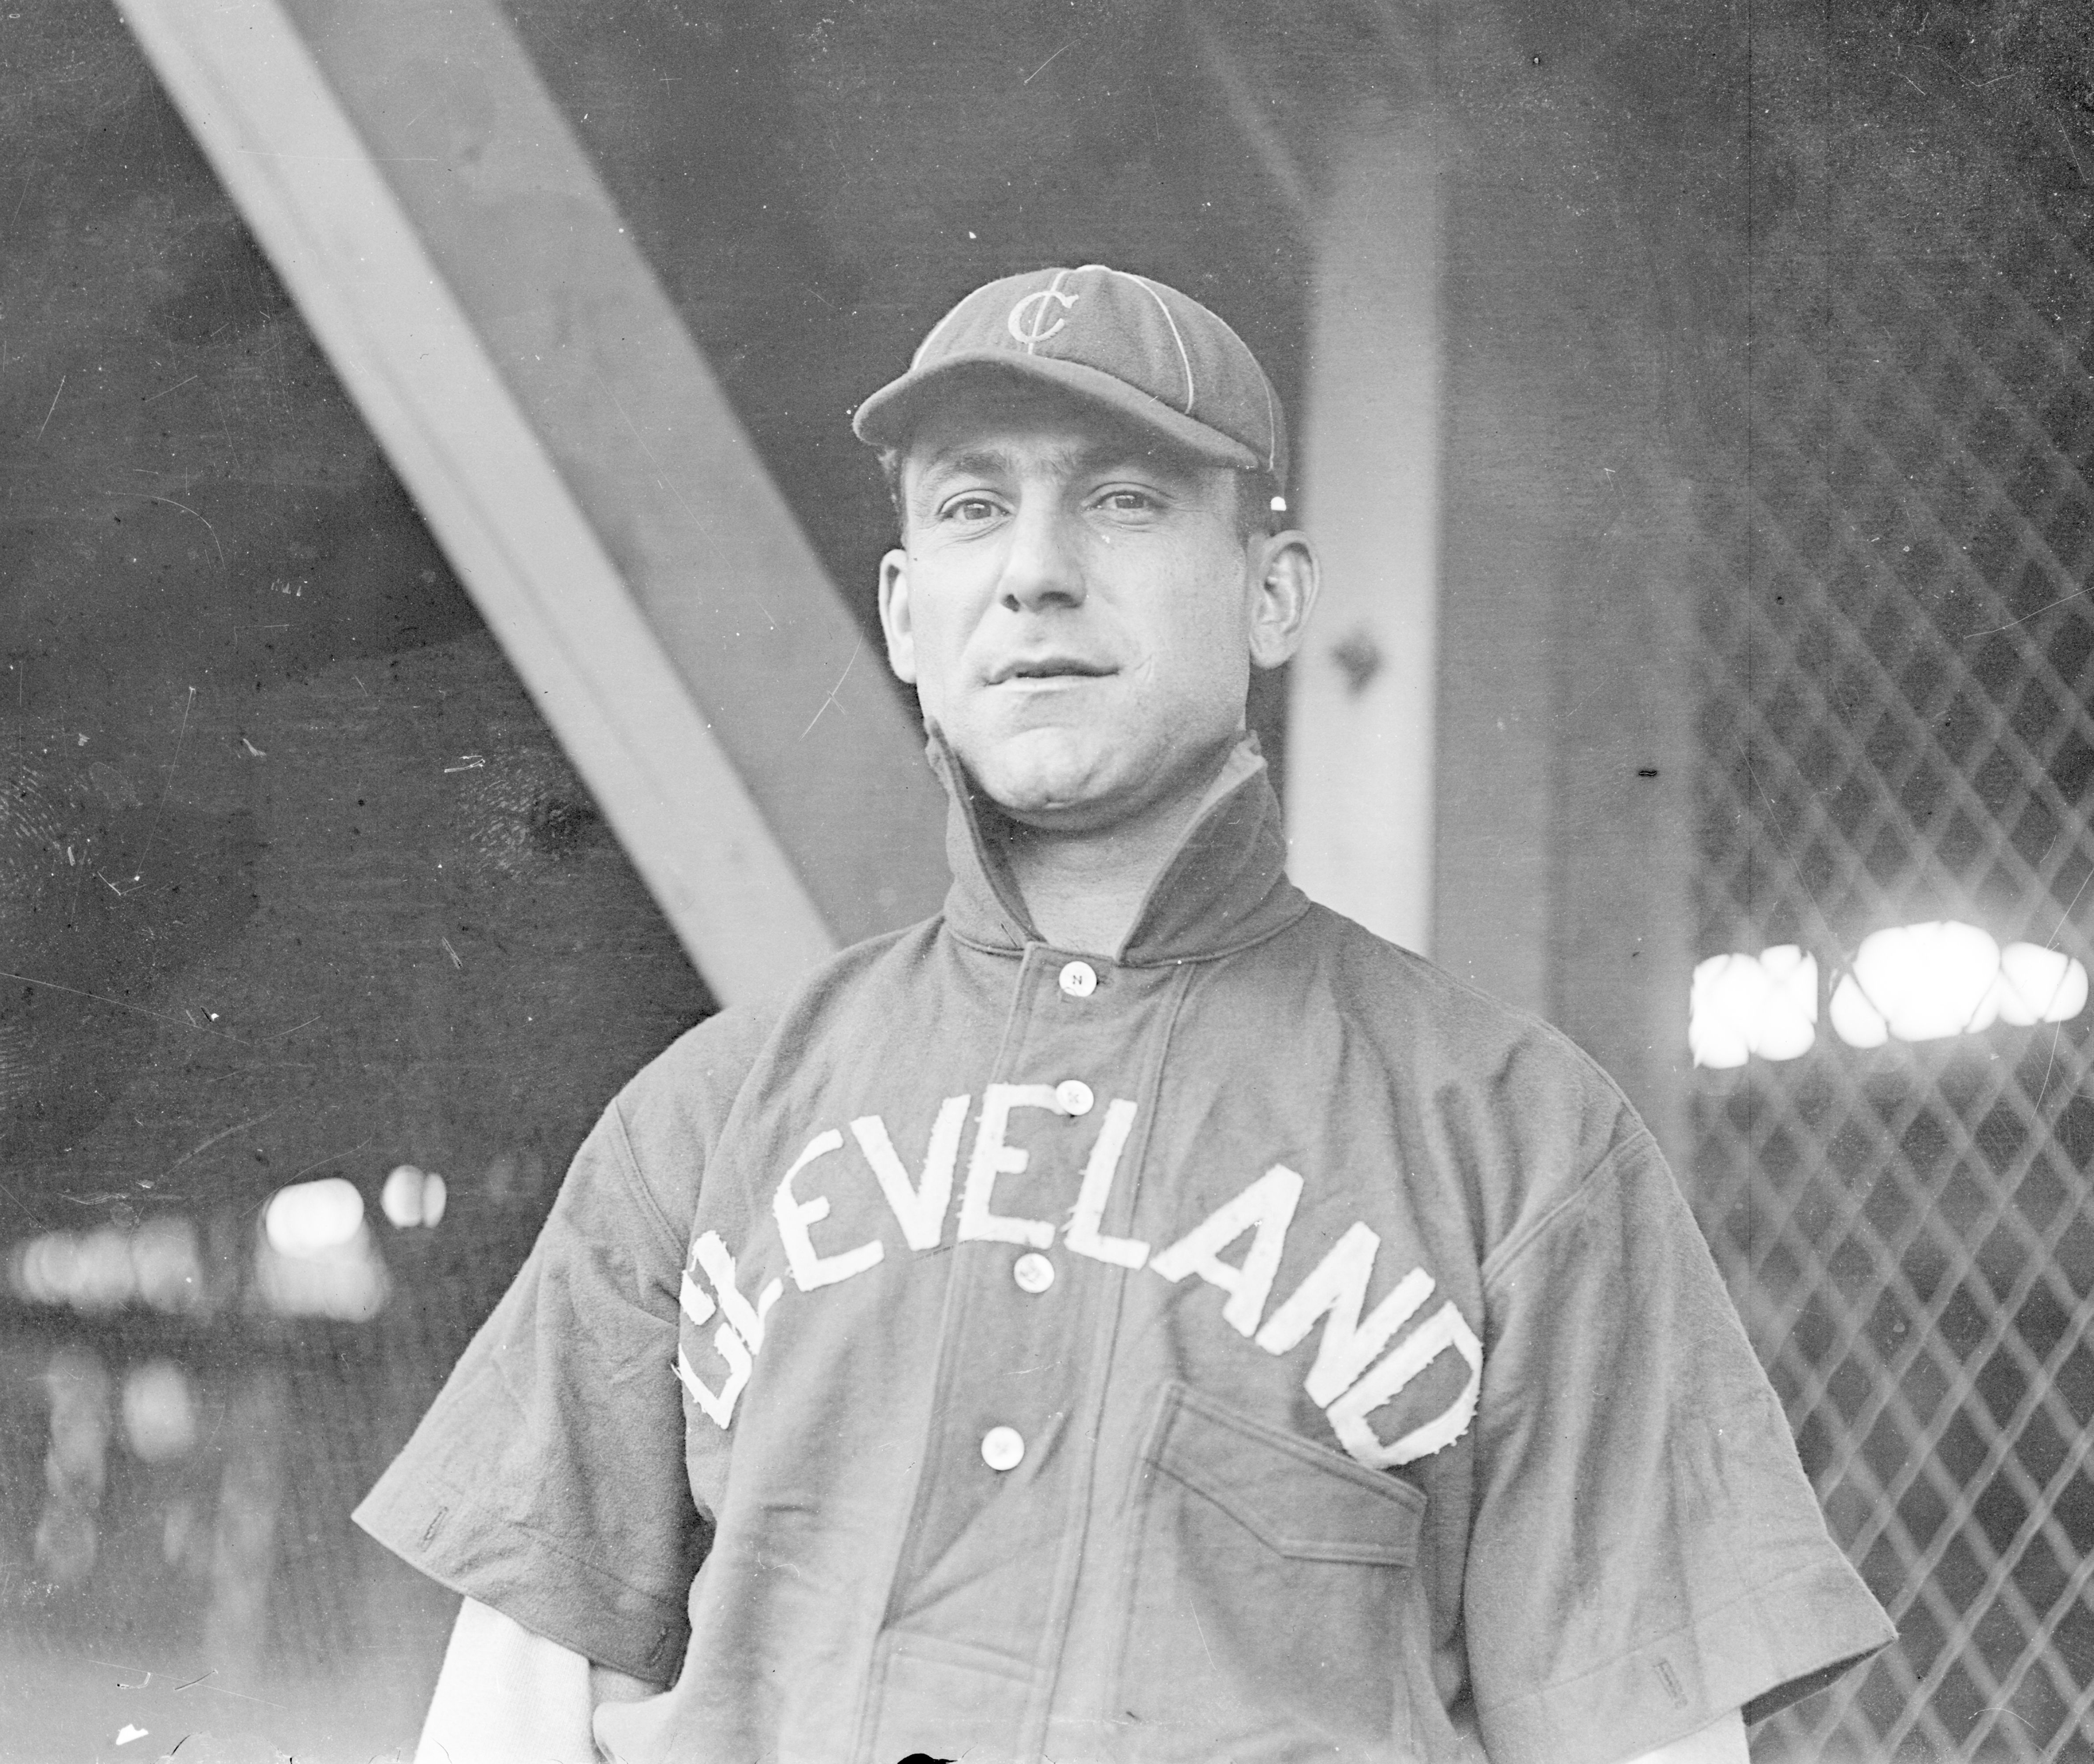 UNITED STATES - CIRCA 1903: Half-length portrait of baseball player, (Napoleon) Nap Lajoie, Hall of Fame second baseman for the Cleveland Naps, American League, standing in the dugout at South Side Park, Chicago, 1903. From the Chicago Daily News collection.